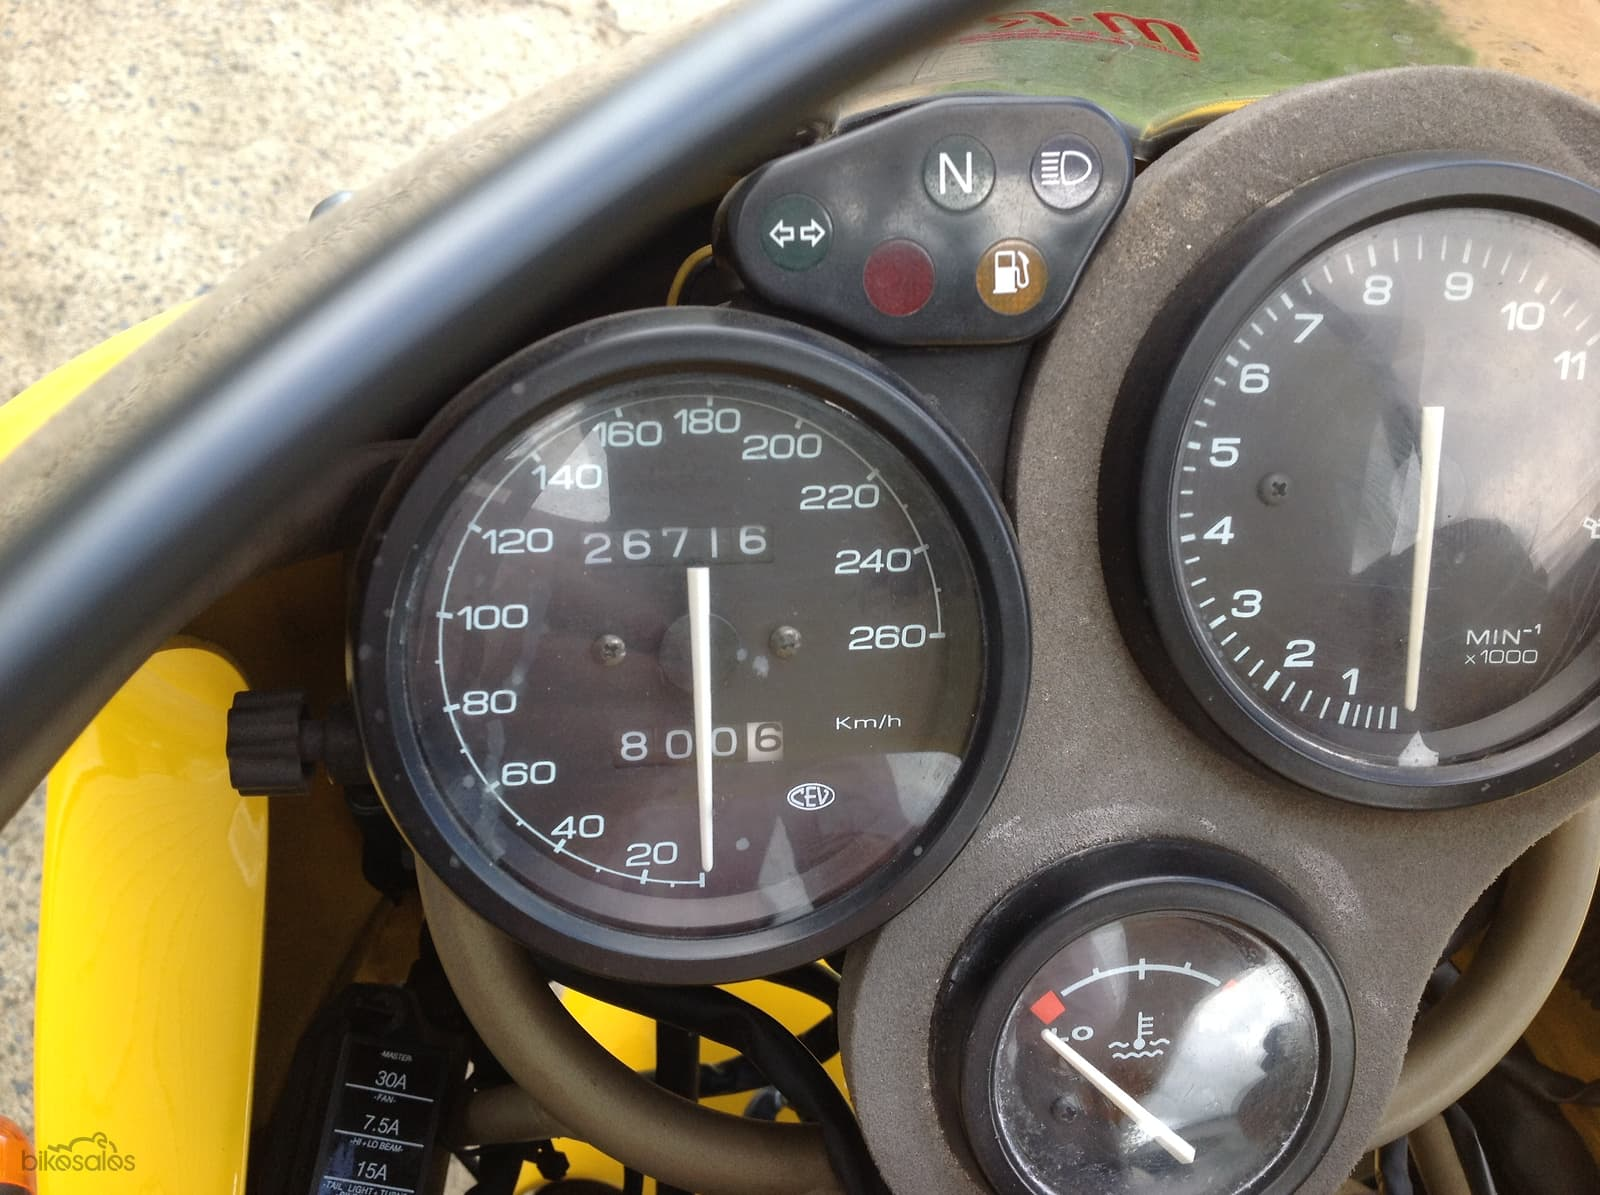 Dash view of the Yellow Ducati 900SS